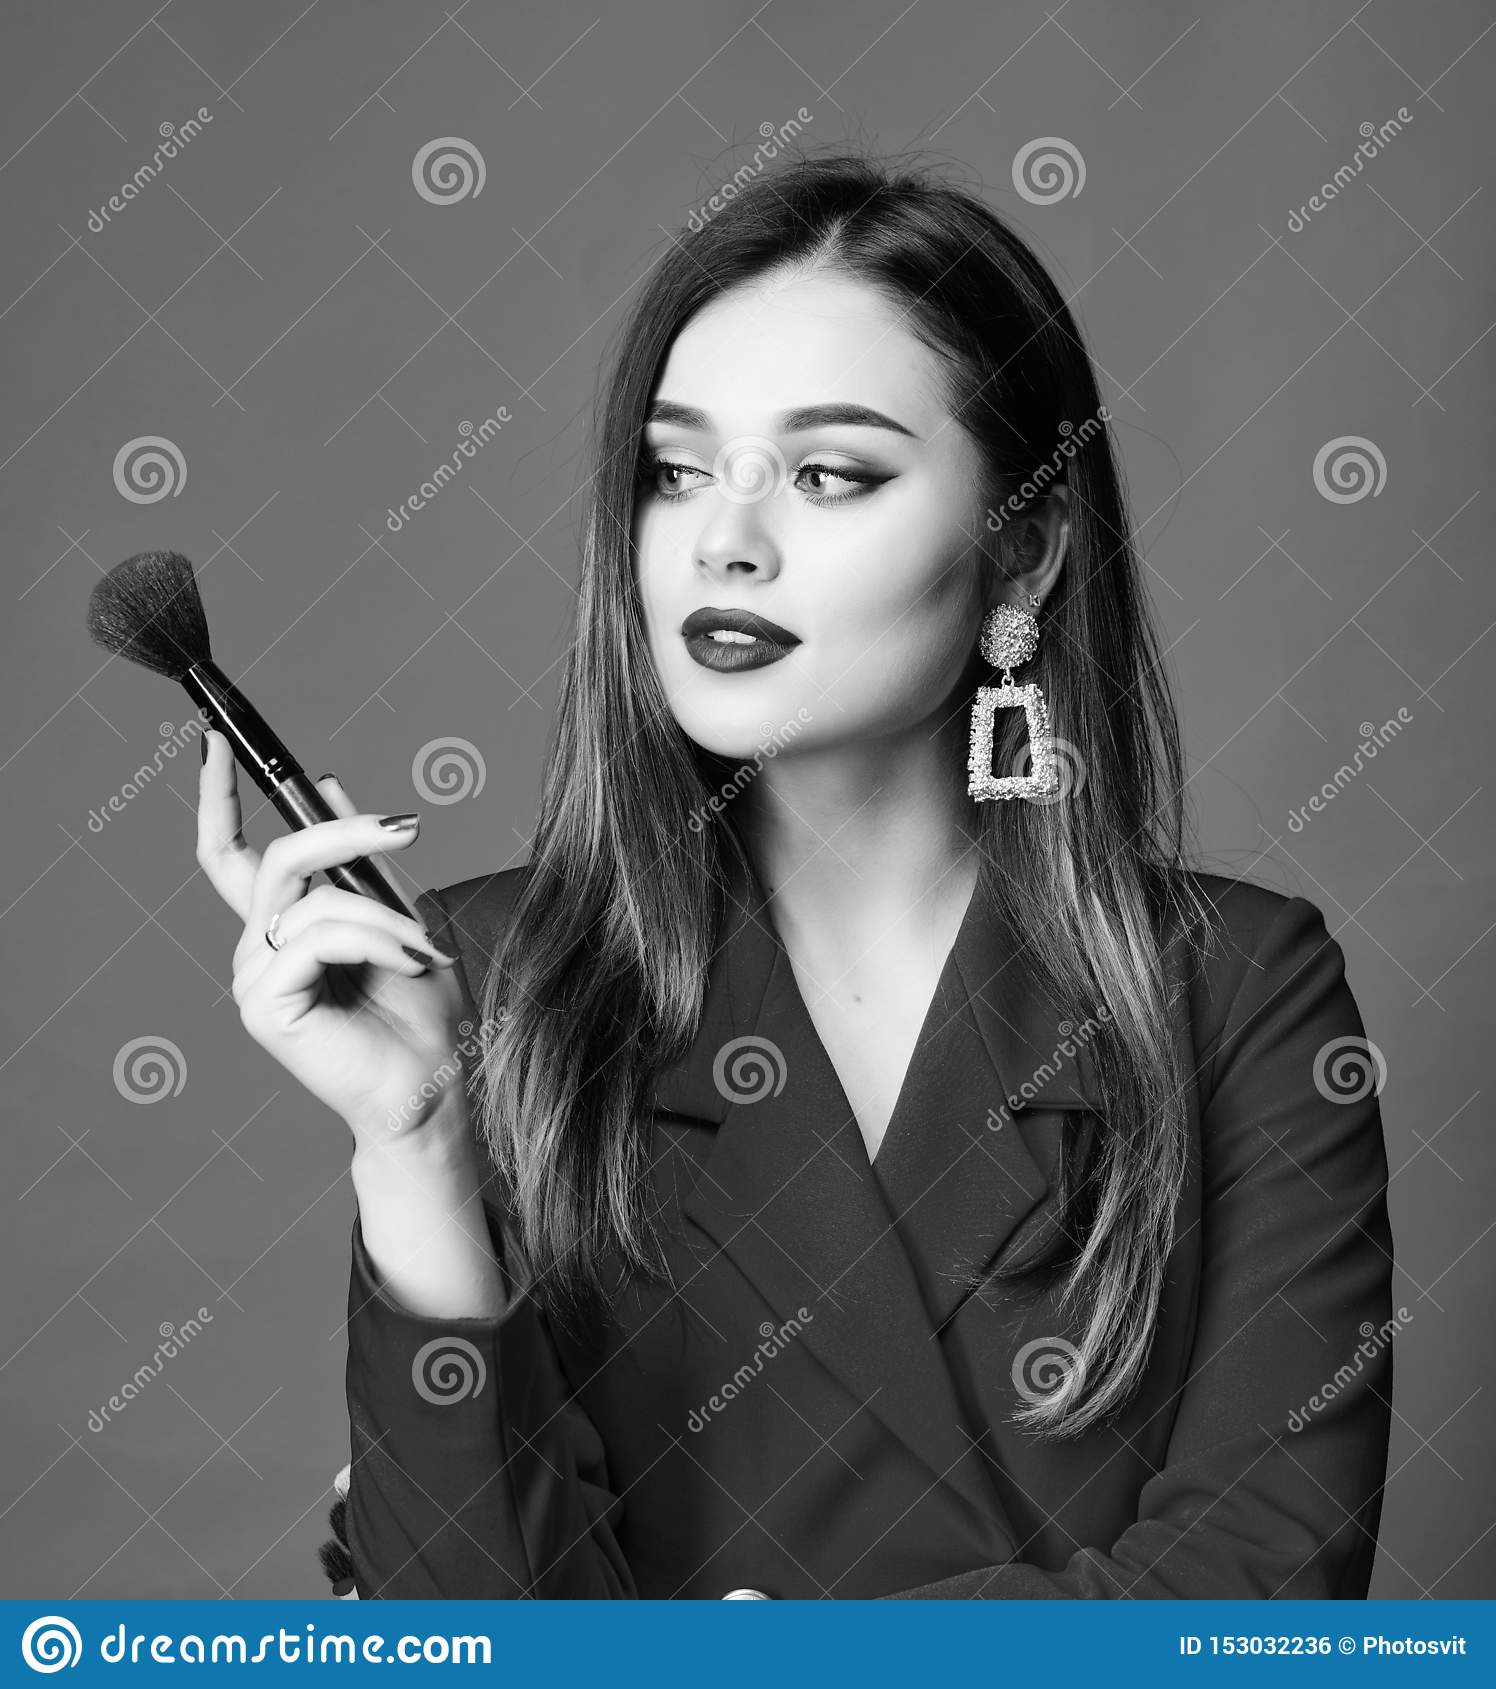 Hiding all imperfections. Attractive woman applying makeup brush. Perfect skin tone. Makeup artist concept. Looking good